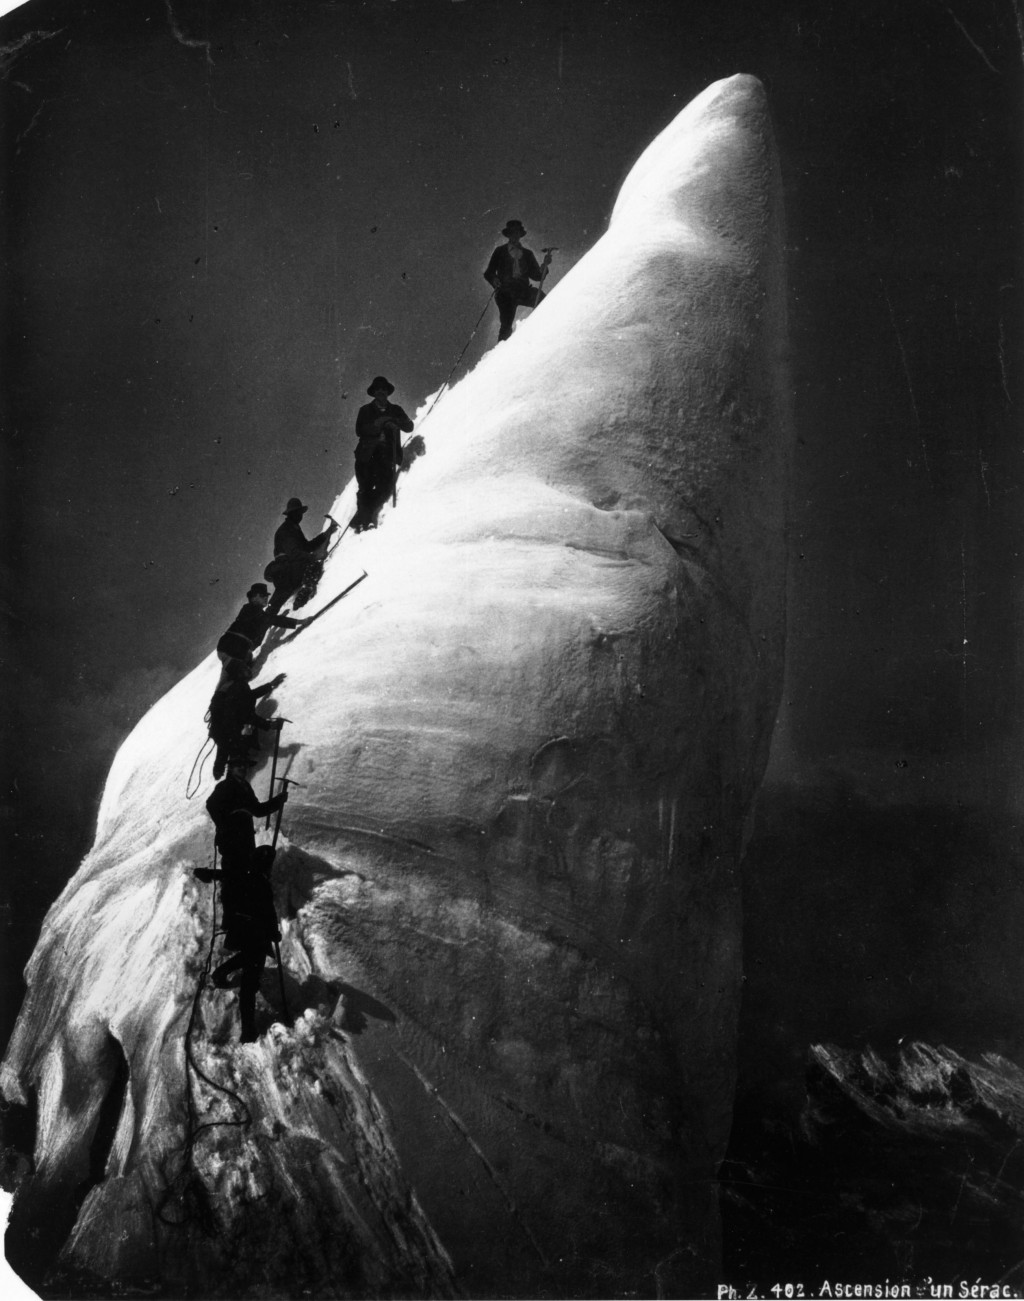 Alpine mountaineers tackling a peak or serac.   (Photo by Hulton Archive/Getty Images)